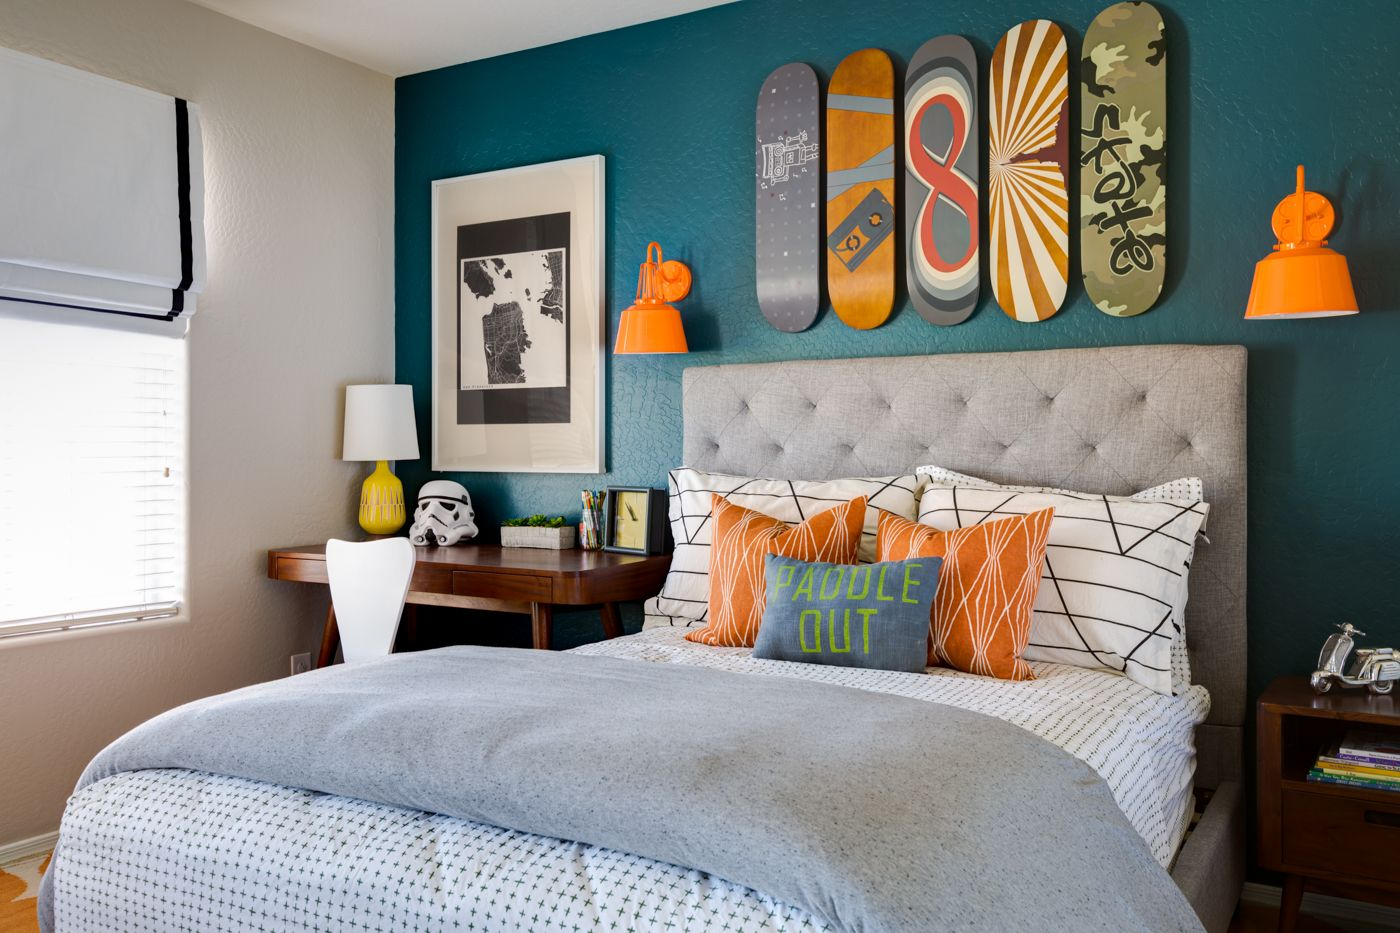 Project nursery teal and orange skateboarding bedroom kids rooms pinterest project - Boy bedroom decor ideas ...